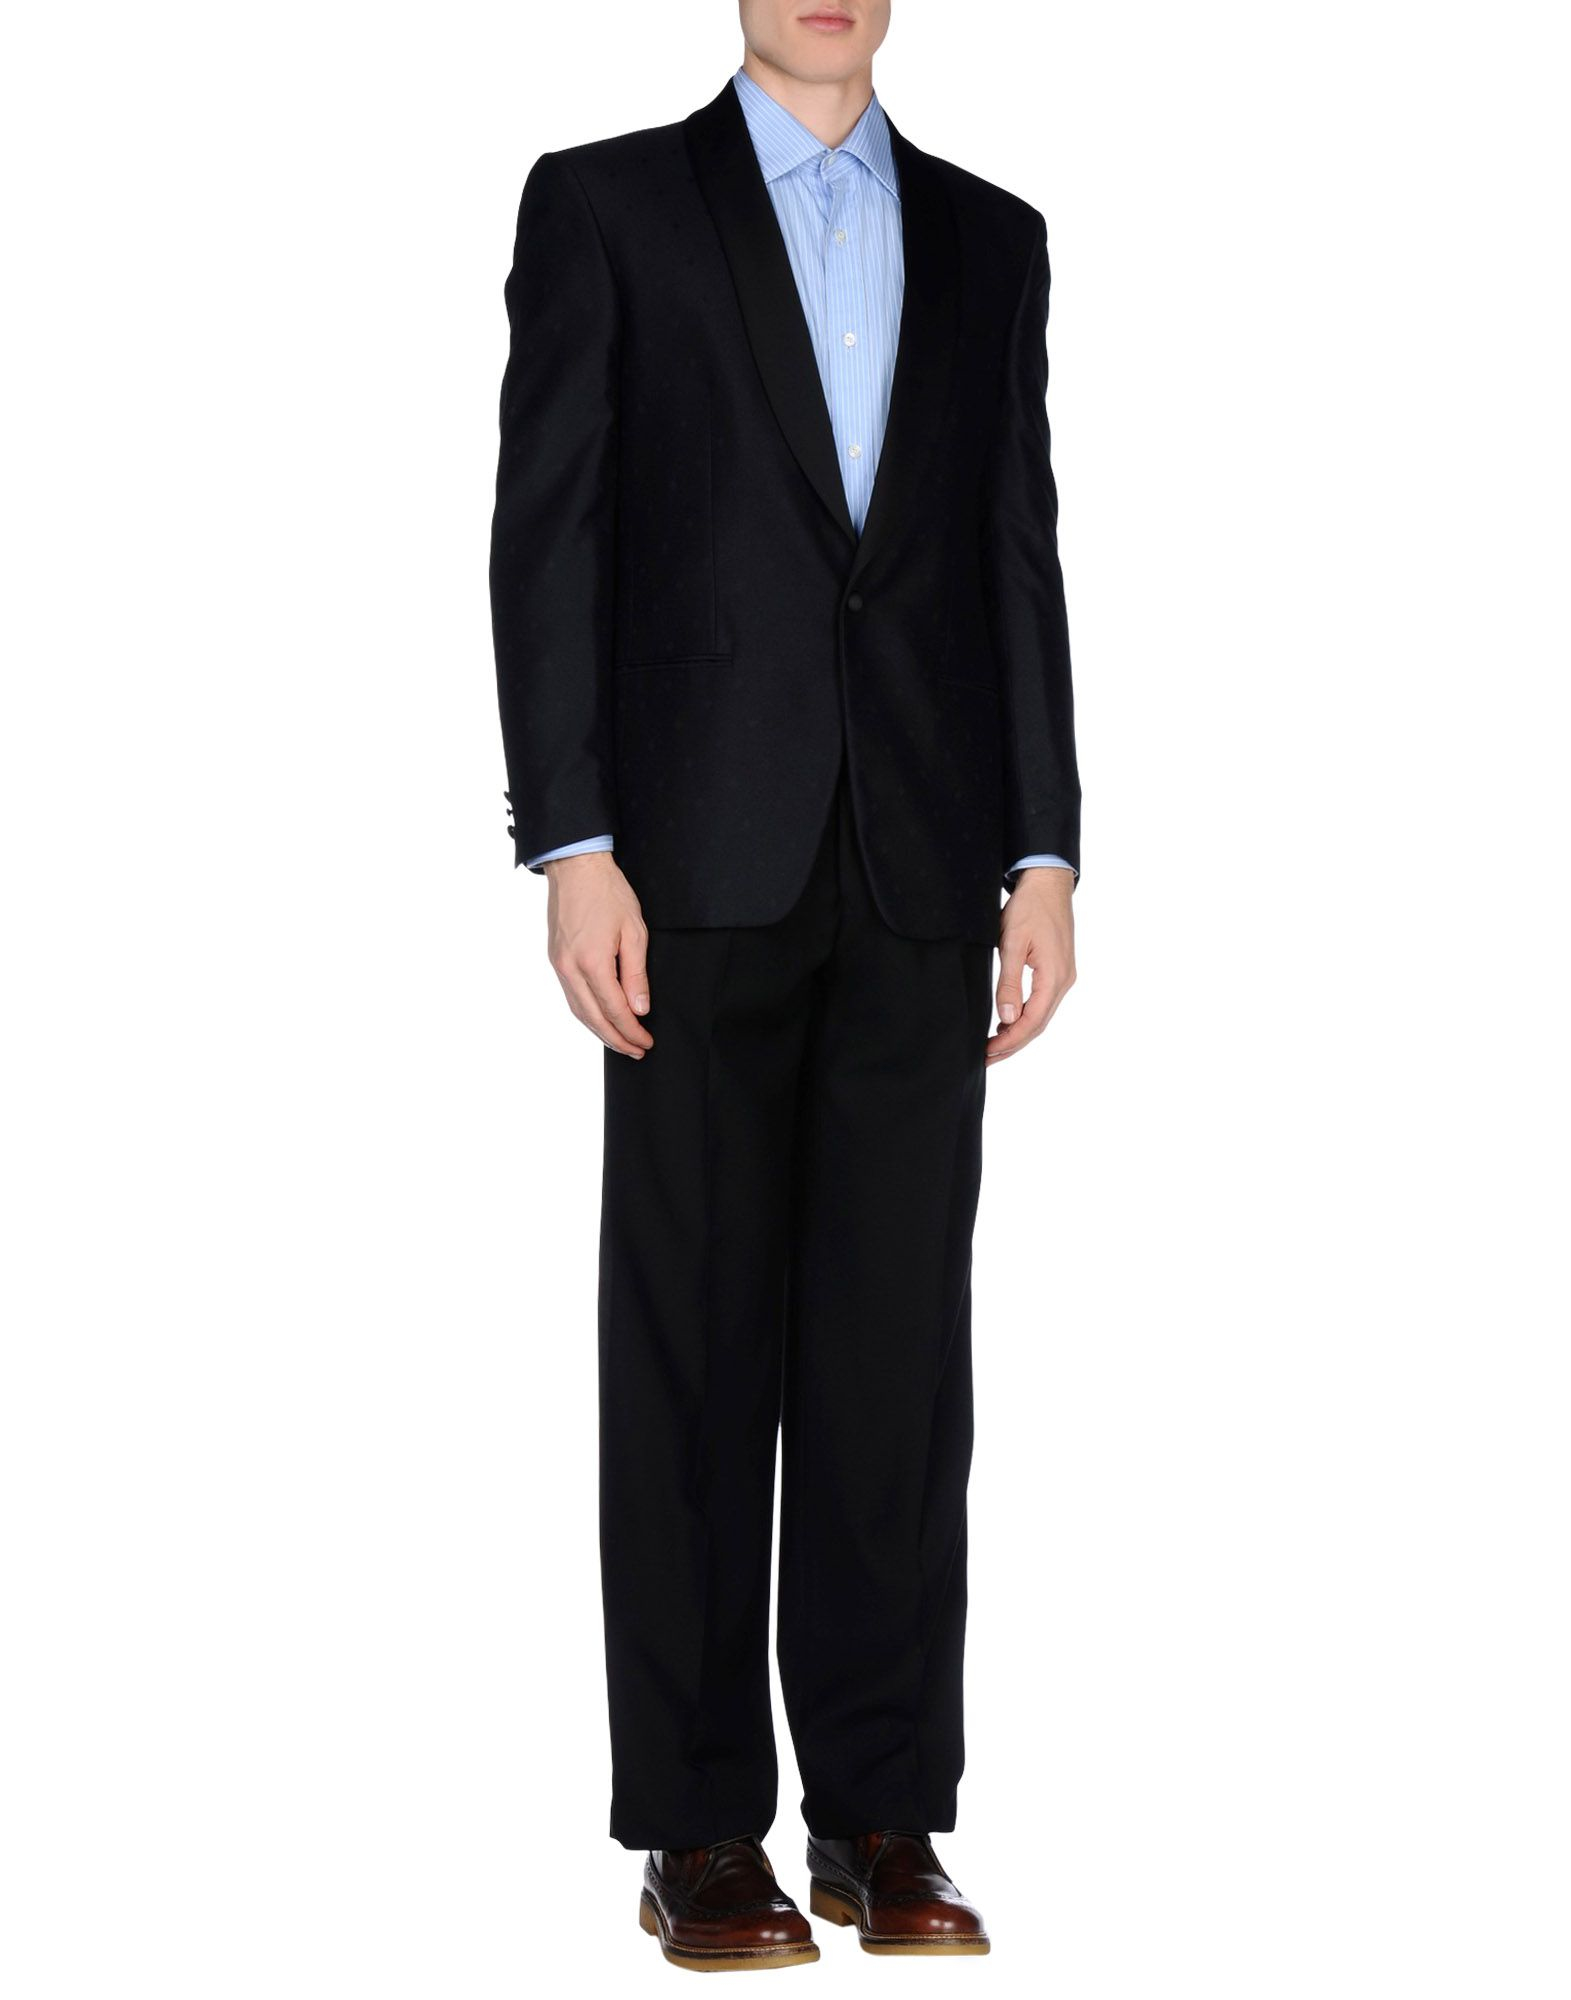 94a209afb5 Cacharel Suit in Black for Men - Lyst